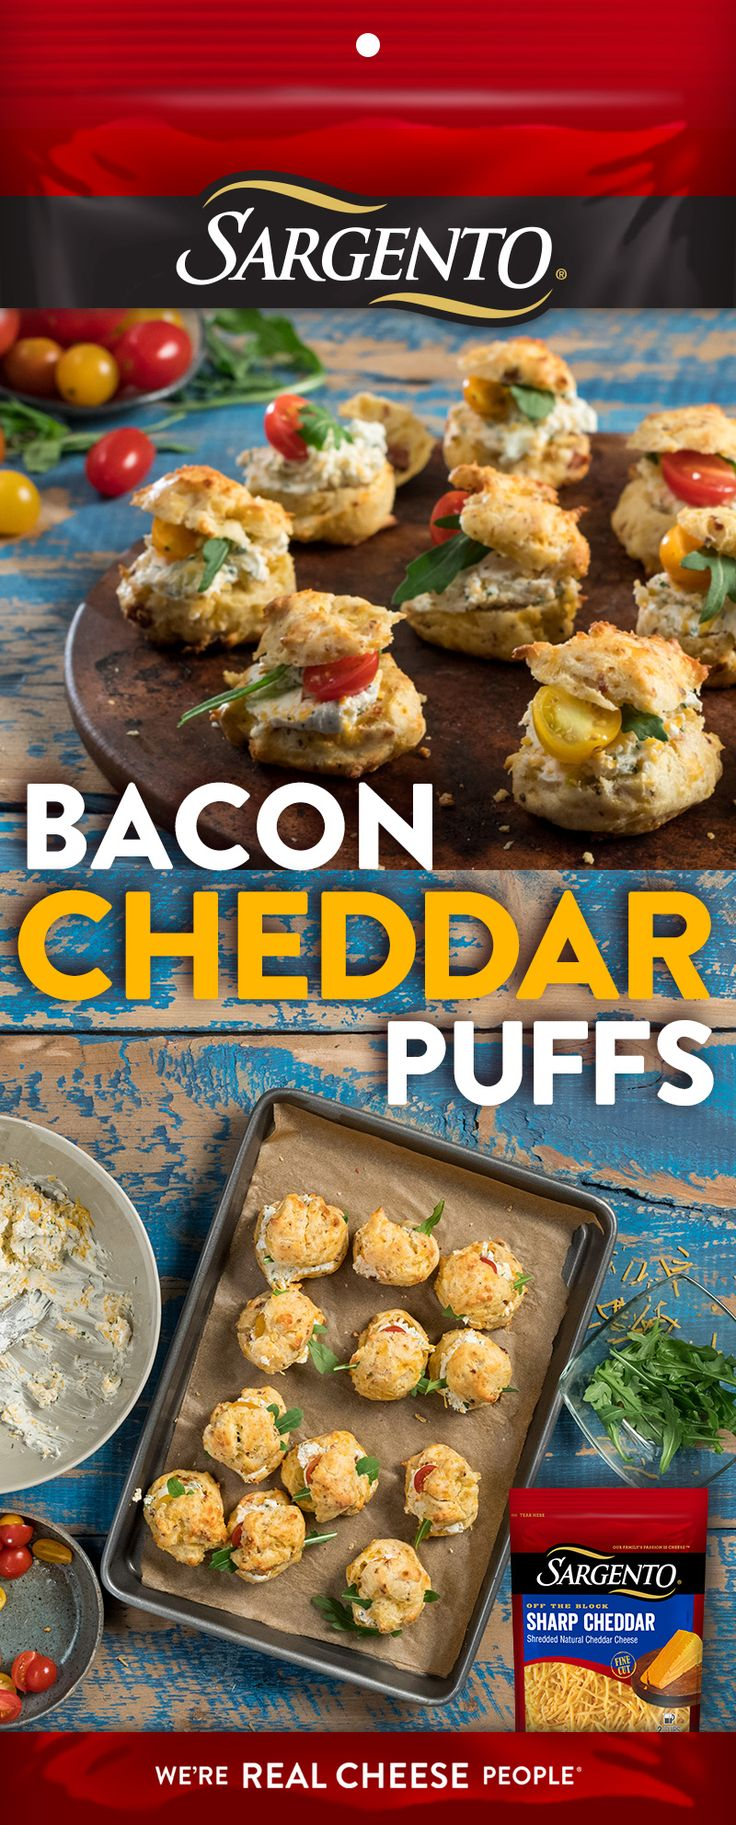 Try a new play for game time snacking. These Bacon Cheddar Puffs, made with Off-The-Block Sargento® shredded cheese, will have your whole team cheering.